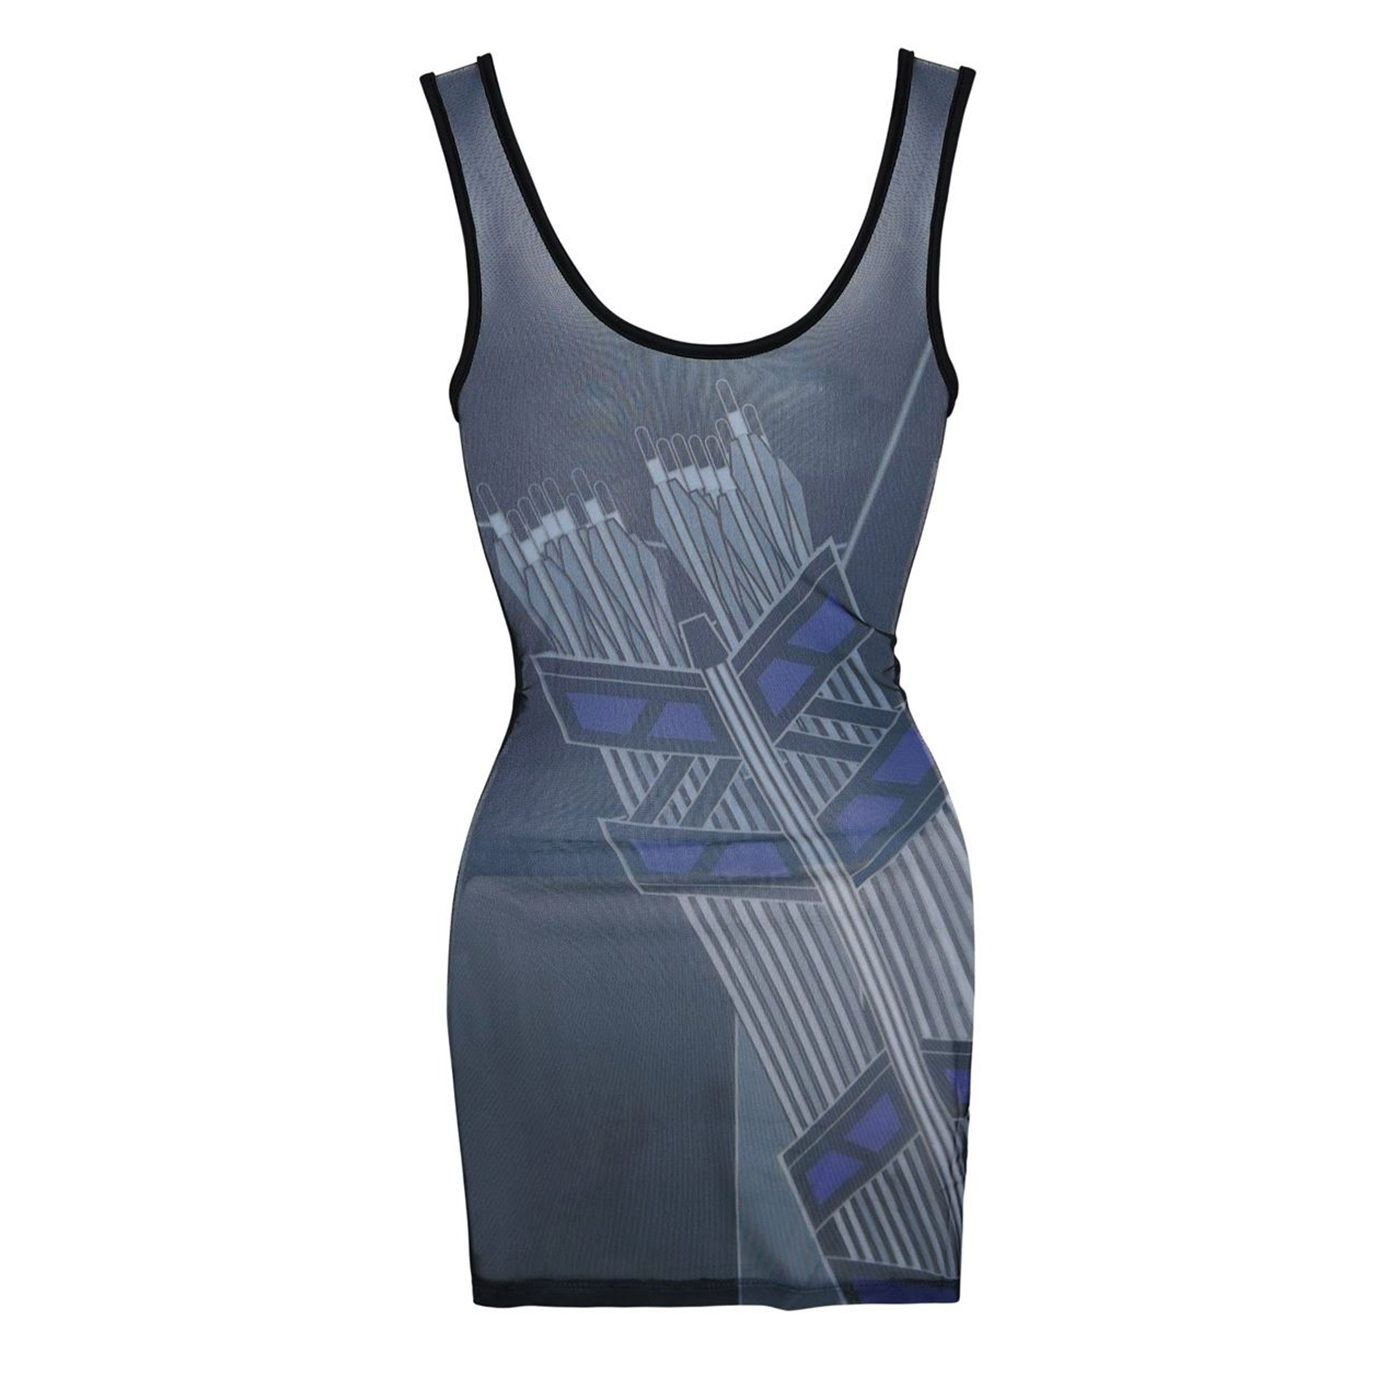 Hawkeye Costume Women's Mesh Back Dress